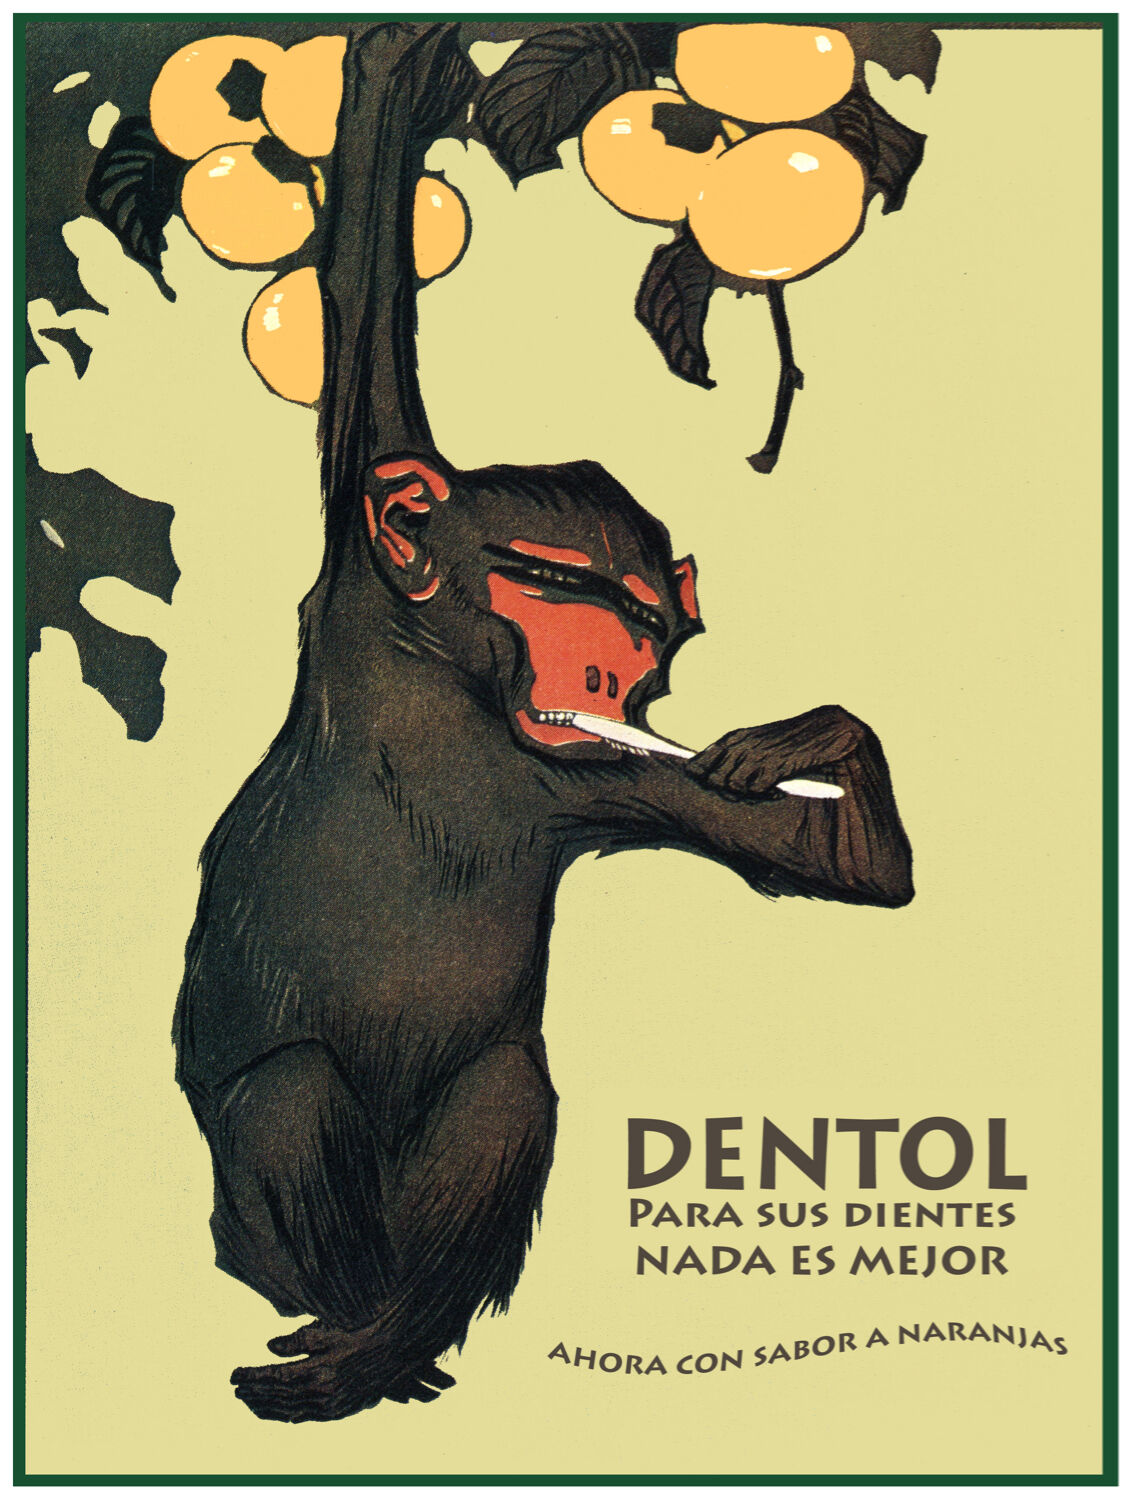 825.Dentol toothpaste Ad Art Decoration POSTER.Graphics to decorate.Funky Monkey